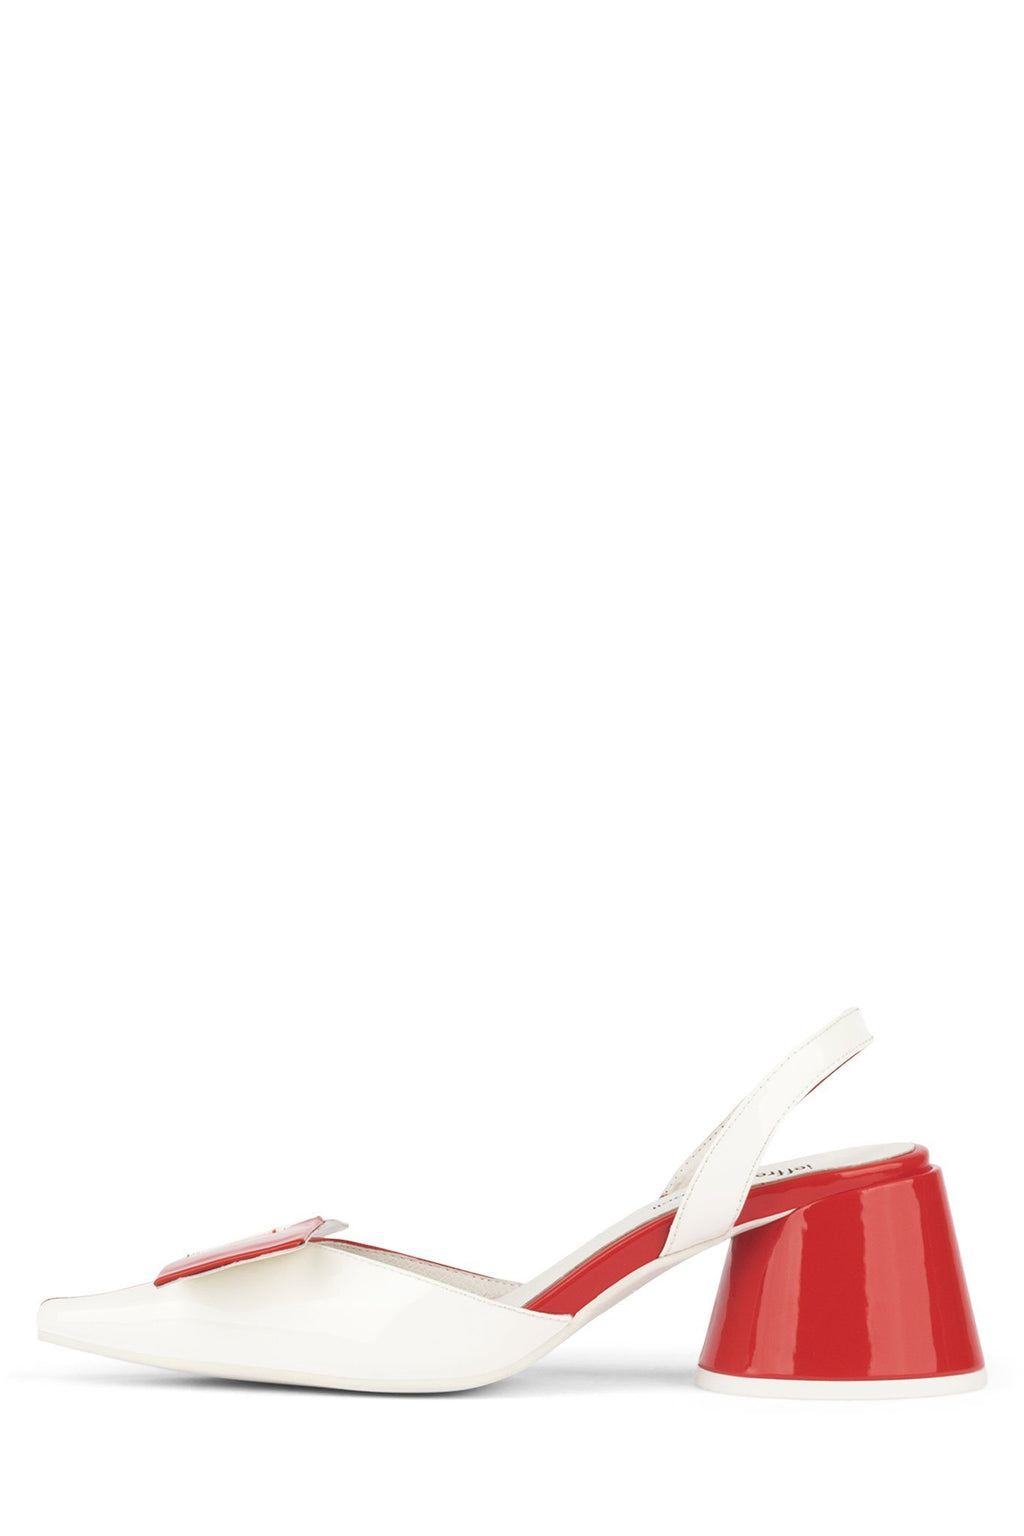 KARI Pump ST Red Patent White Patent 6